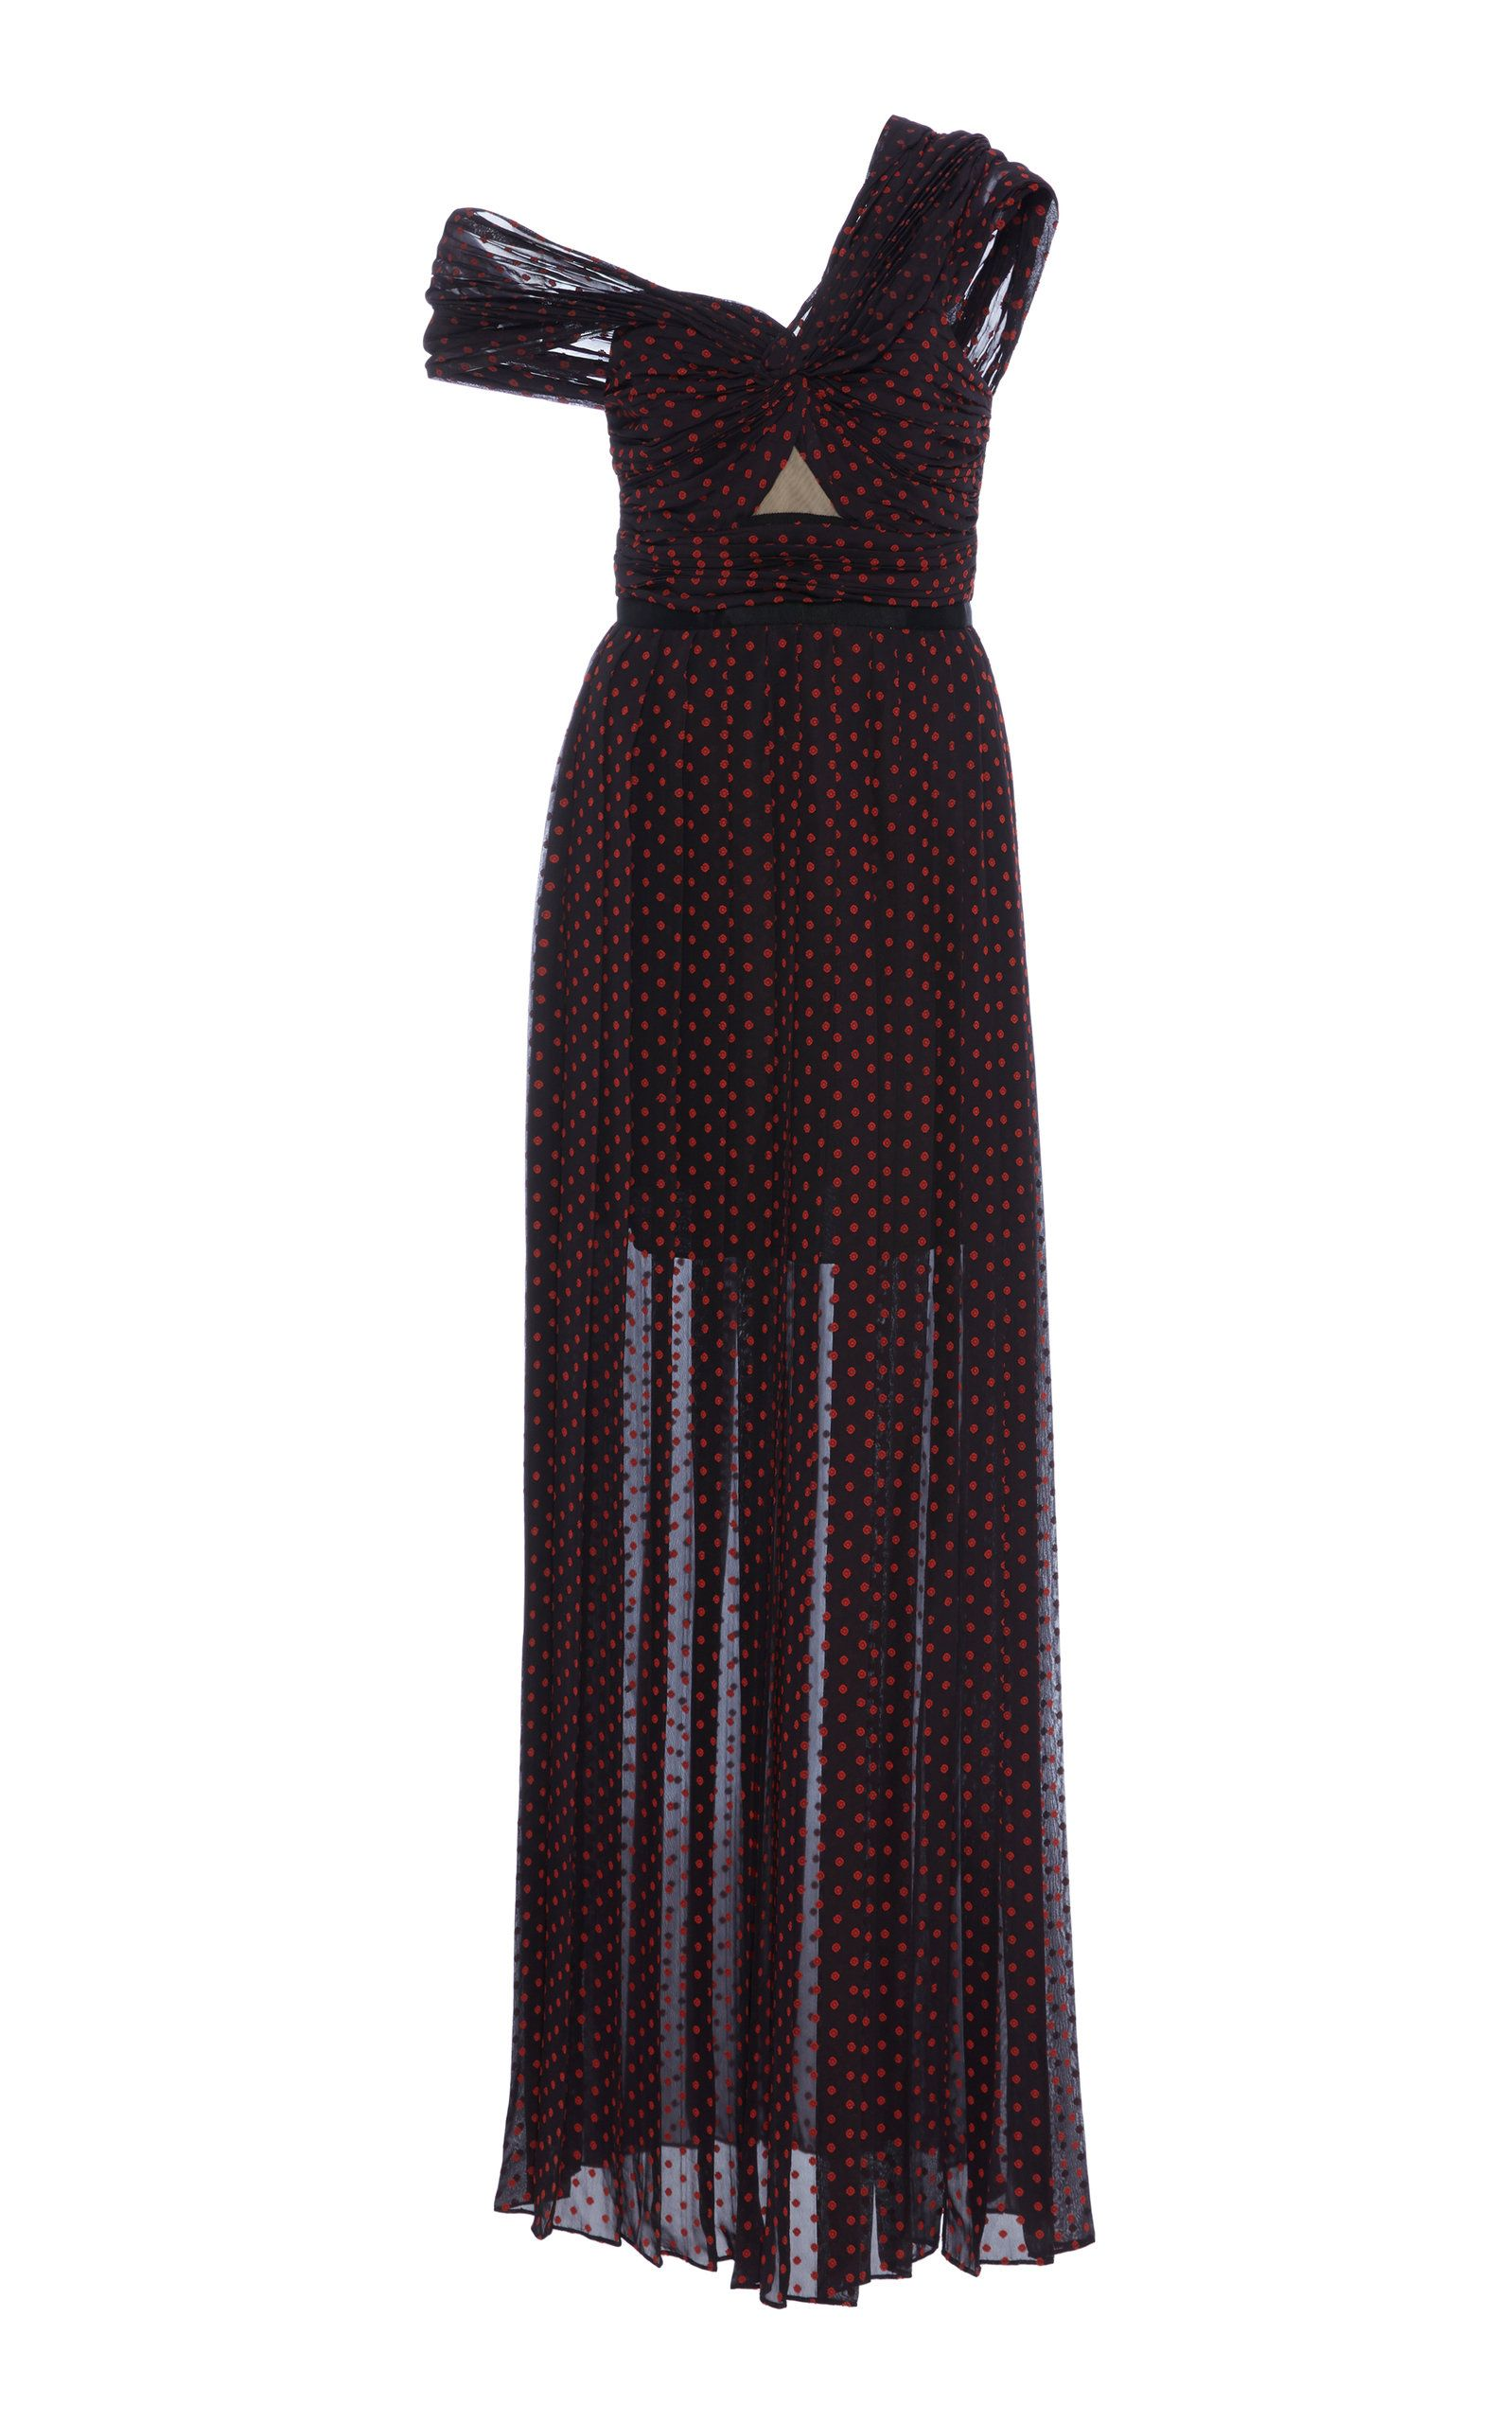 a56a5ae77d4 One Shoulder Plumetis Maxi Dress by SELF PORTRAIT Now Available on Moda  Operandi